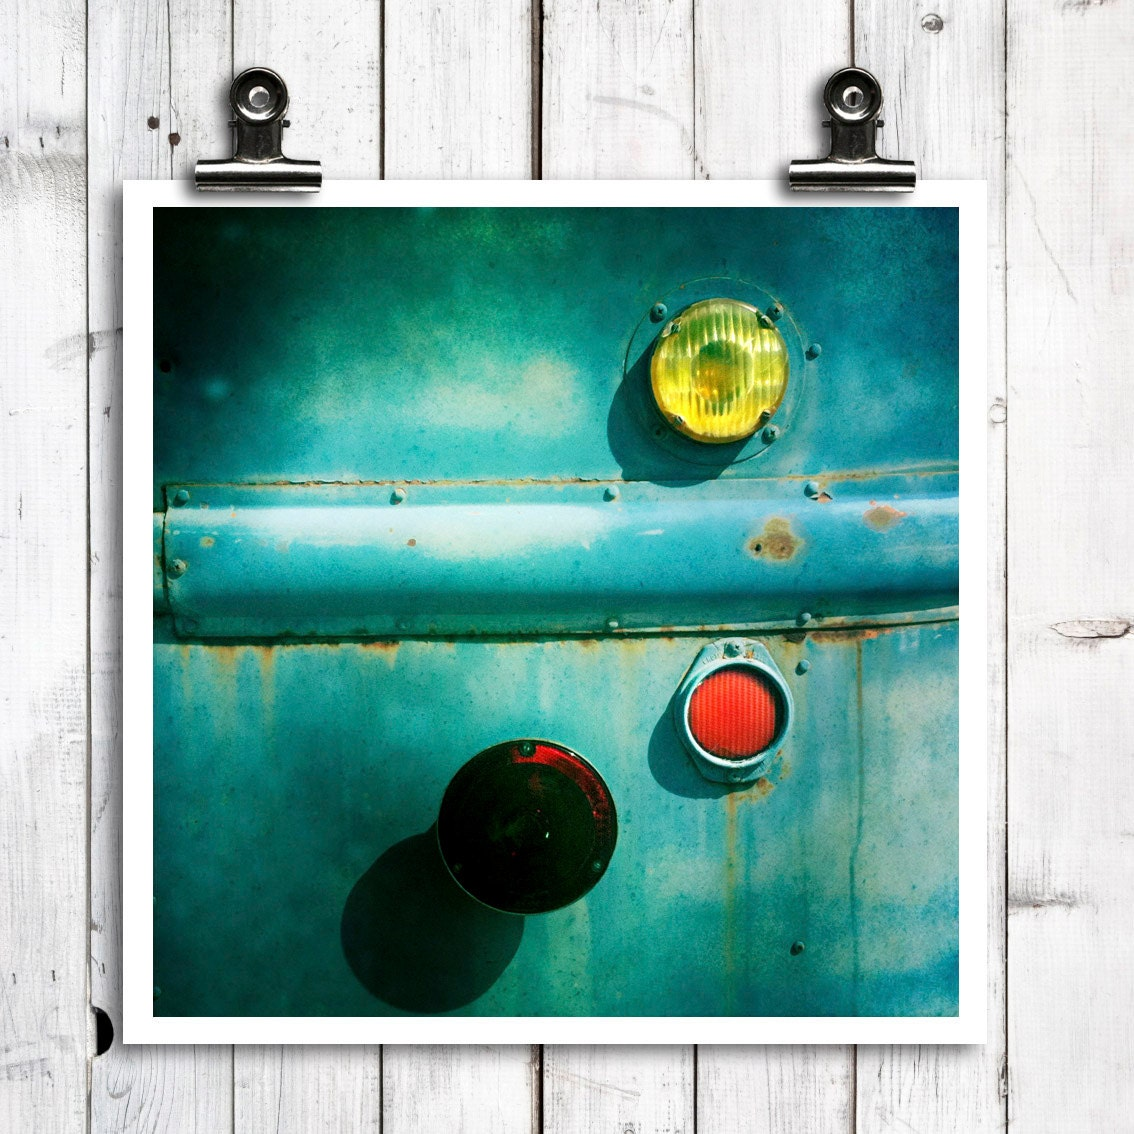 "industrial wall art, tail lights, modern home decor, large wall art, rustic modern -  ""Right Lights"" - 8x8 photograph - MTPhotoJournal"